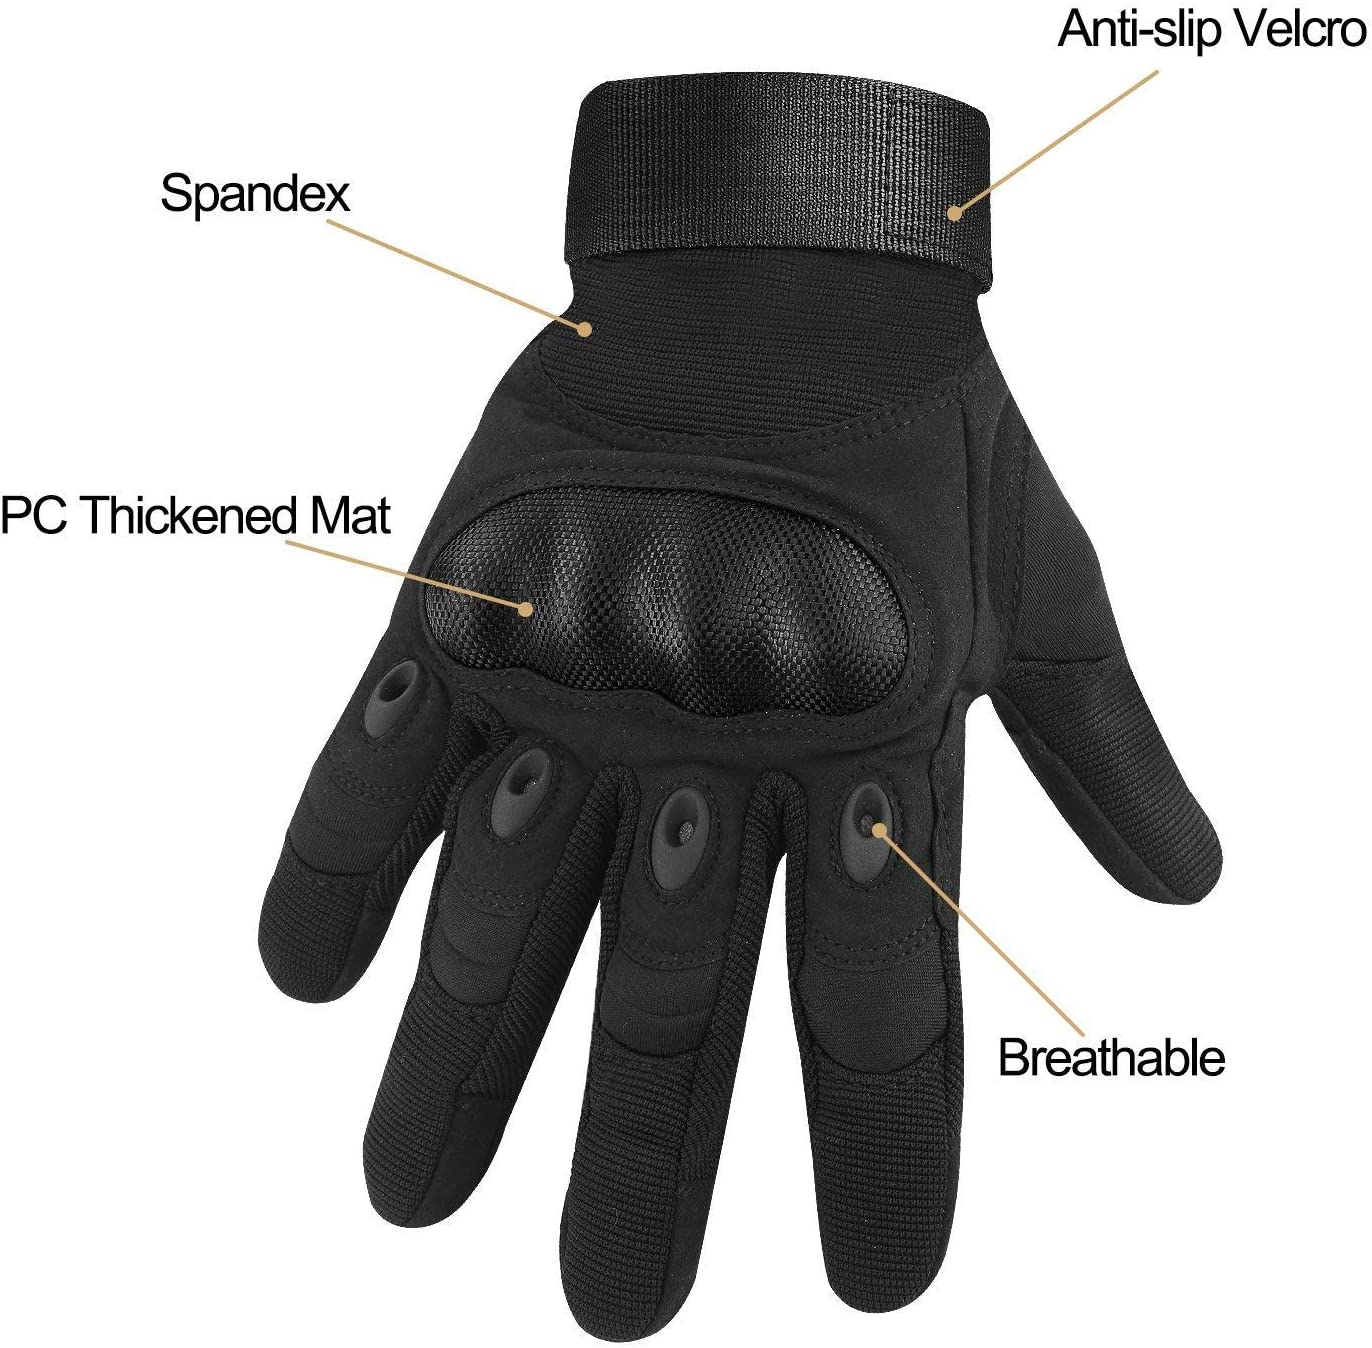 HOMEE Tactical Gloves Touch Screen Military Rubber Hard Knuckle Full Finger Gloves Fit for Cycling Airsoft Paintball Motorcycle Hiking Camping